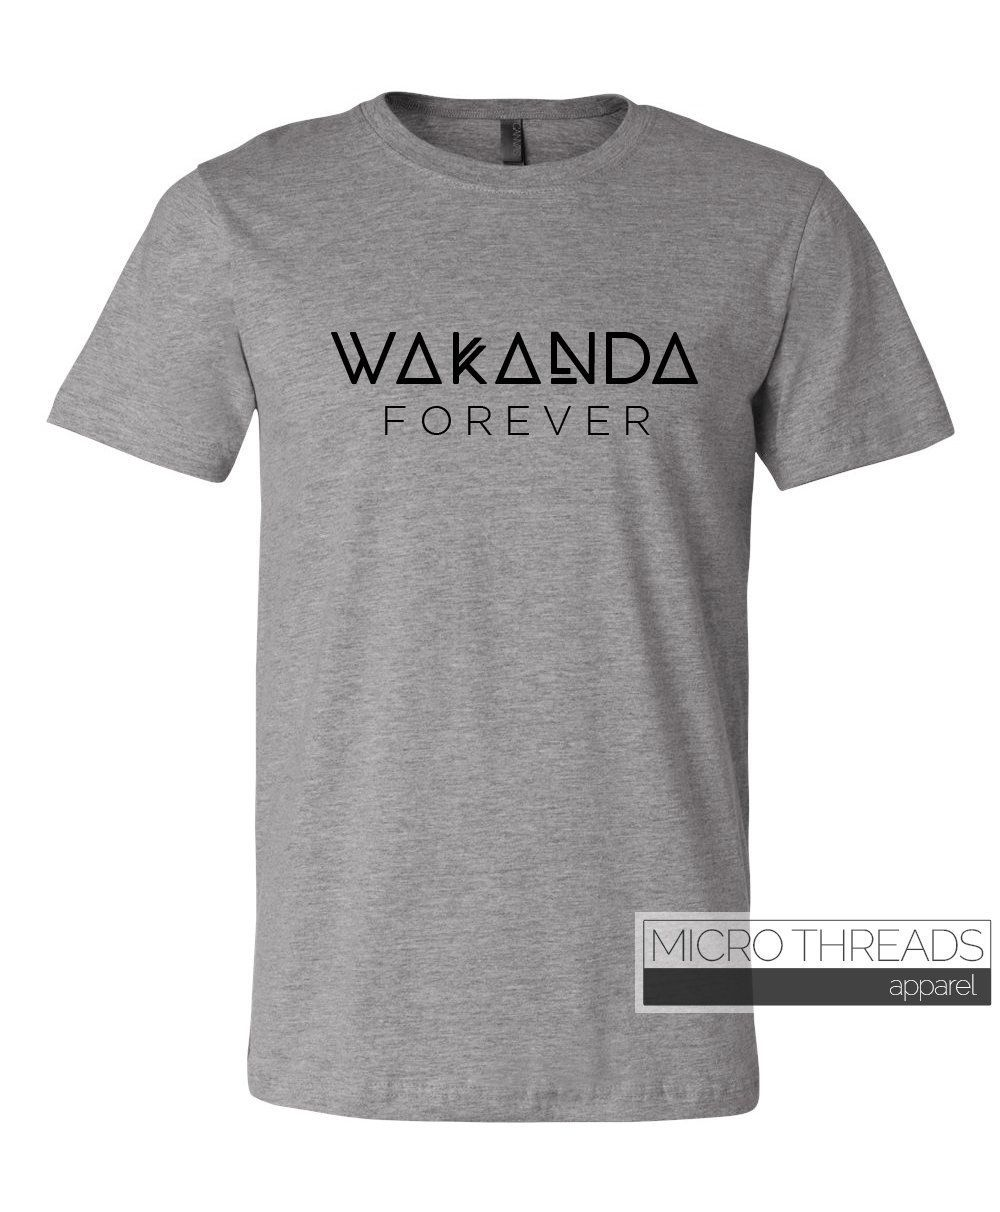 7546aae25 Wakanda Forever Black Panther Adult T-Shirt - Infinity War - Funny Comic  Book Shirts - Guardians - Unisex Shirt - Thanos by MicroThreads on Etsy